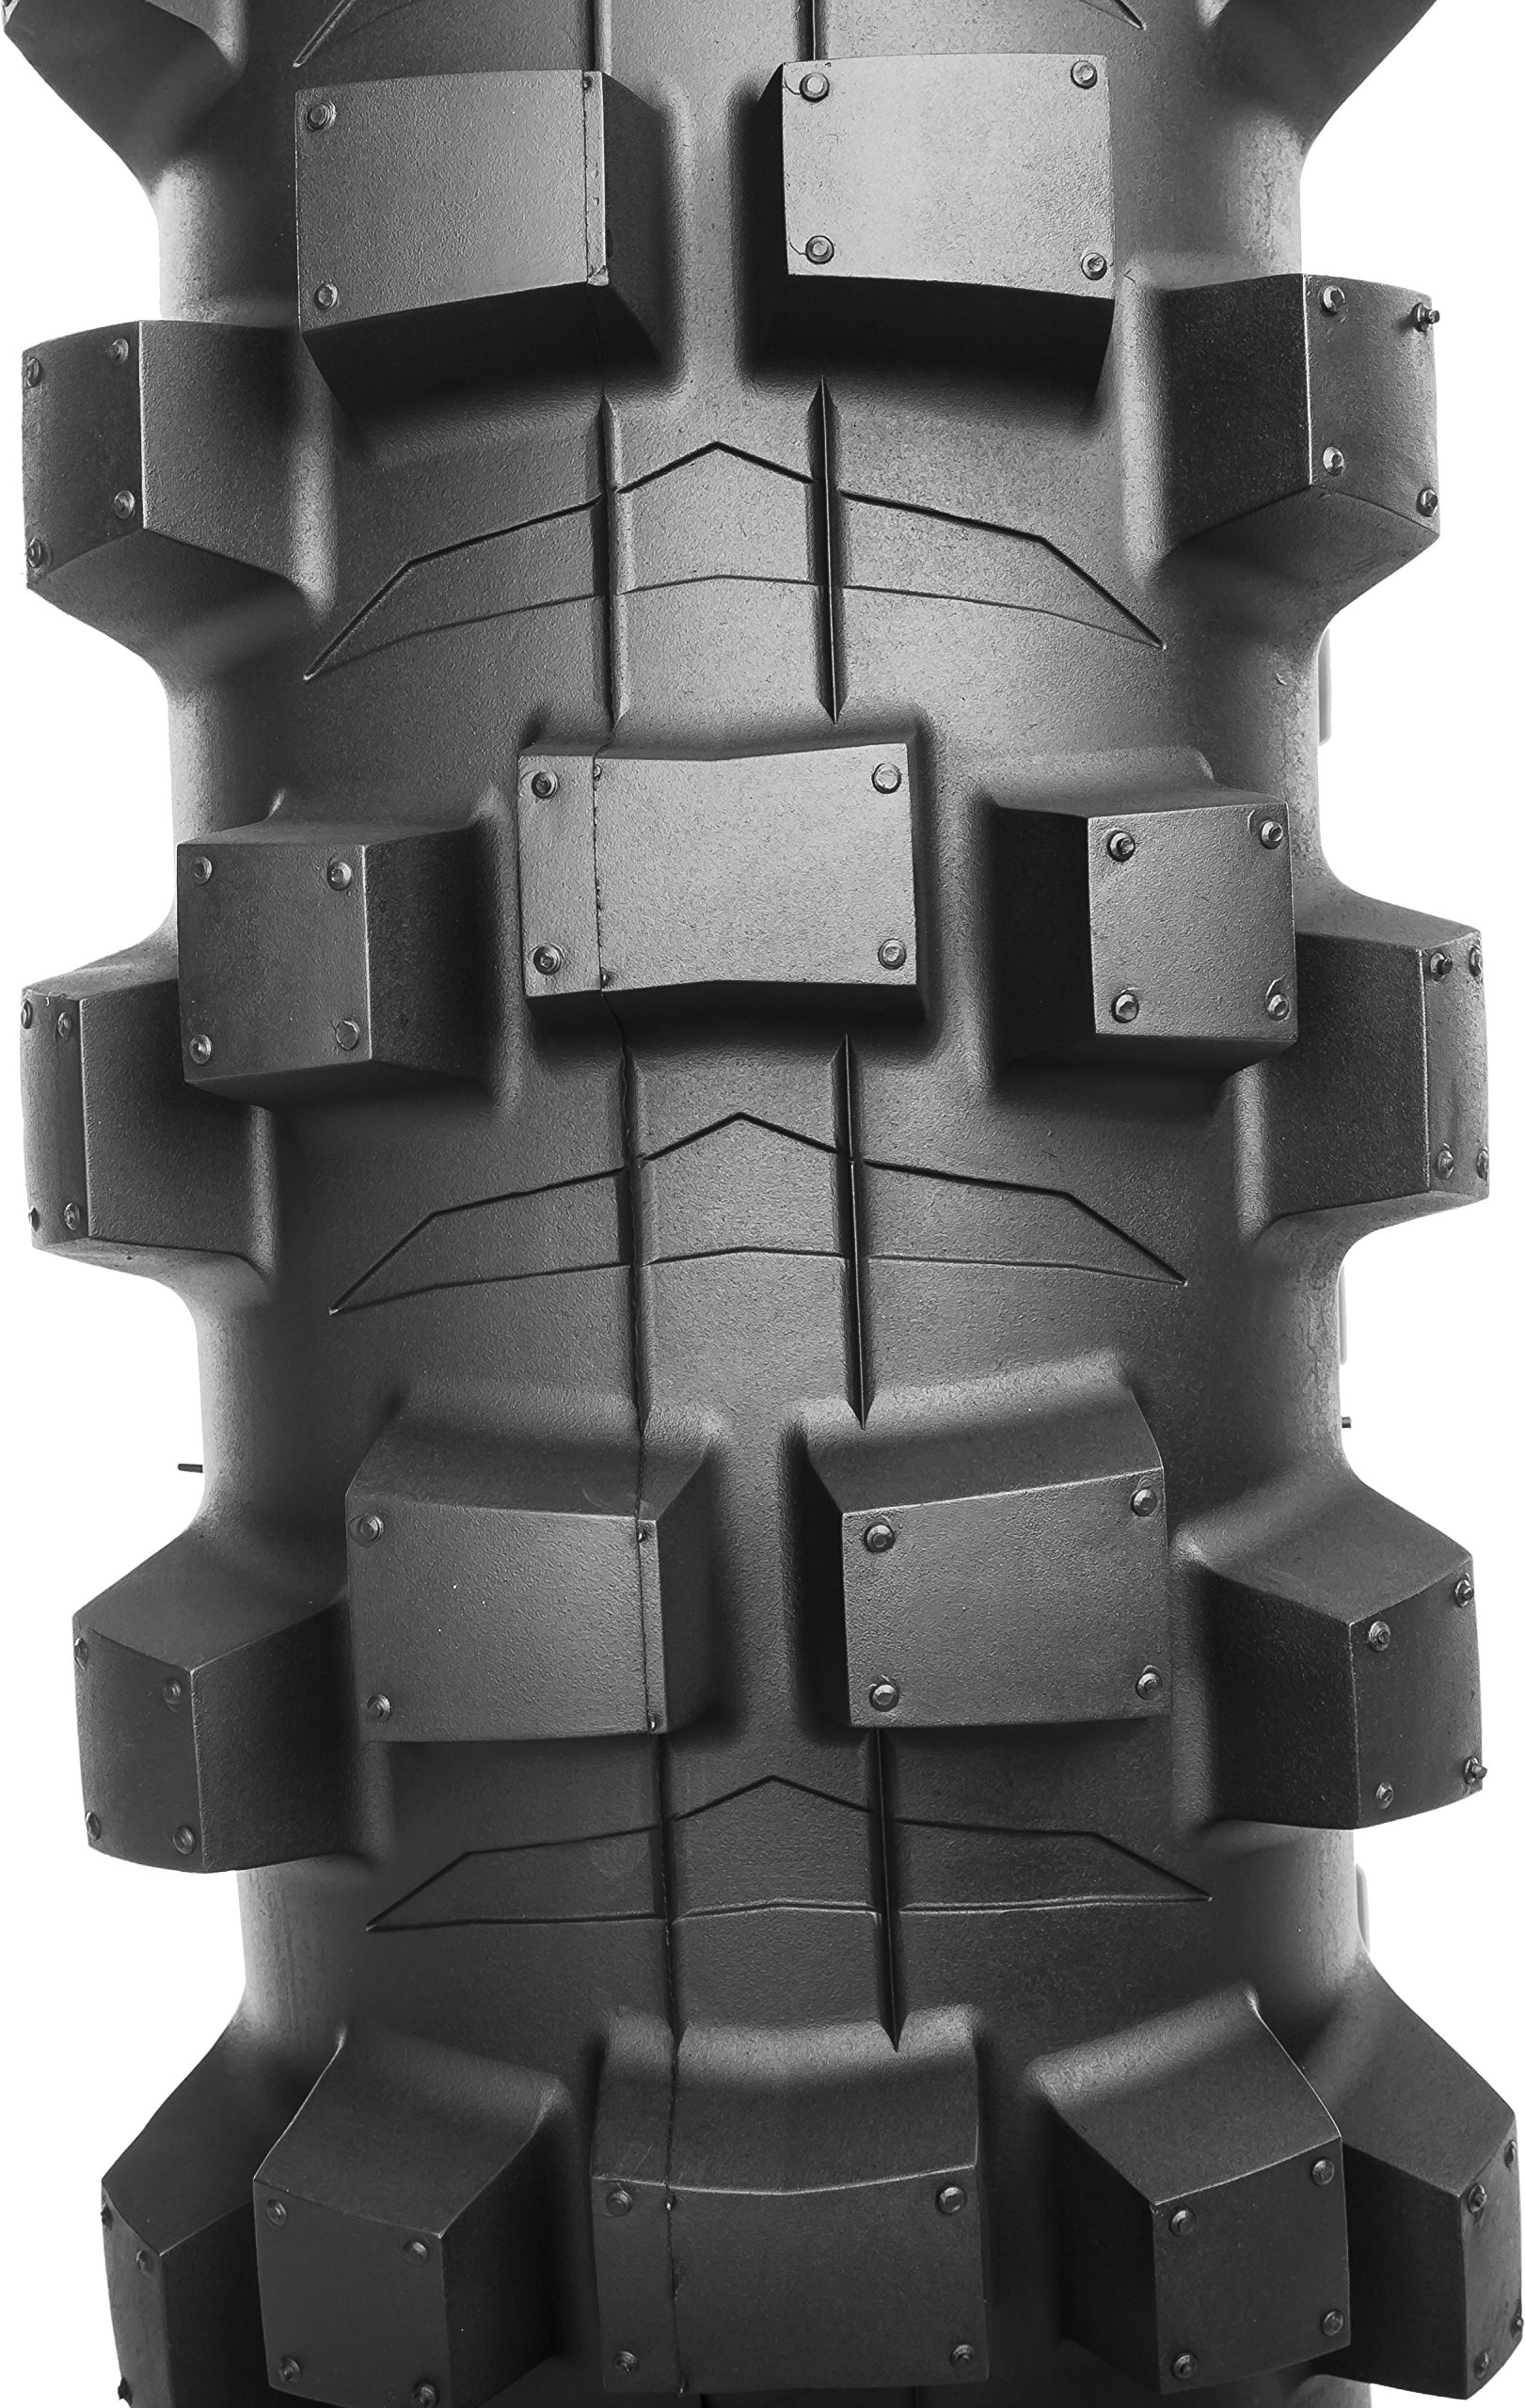 IRC M5B EVO Tire - Rear - 130/80-18 , Position: Rear, Rim Size: 18, Tire Application: Soft, Tire Size: 130/80-18, Tire Type: Offroad, Load Rating: 66, Speed Rating: M T10340